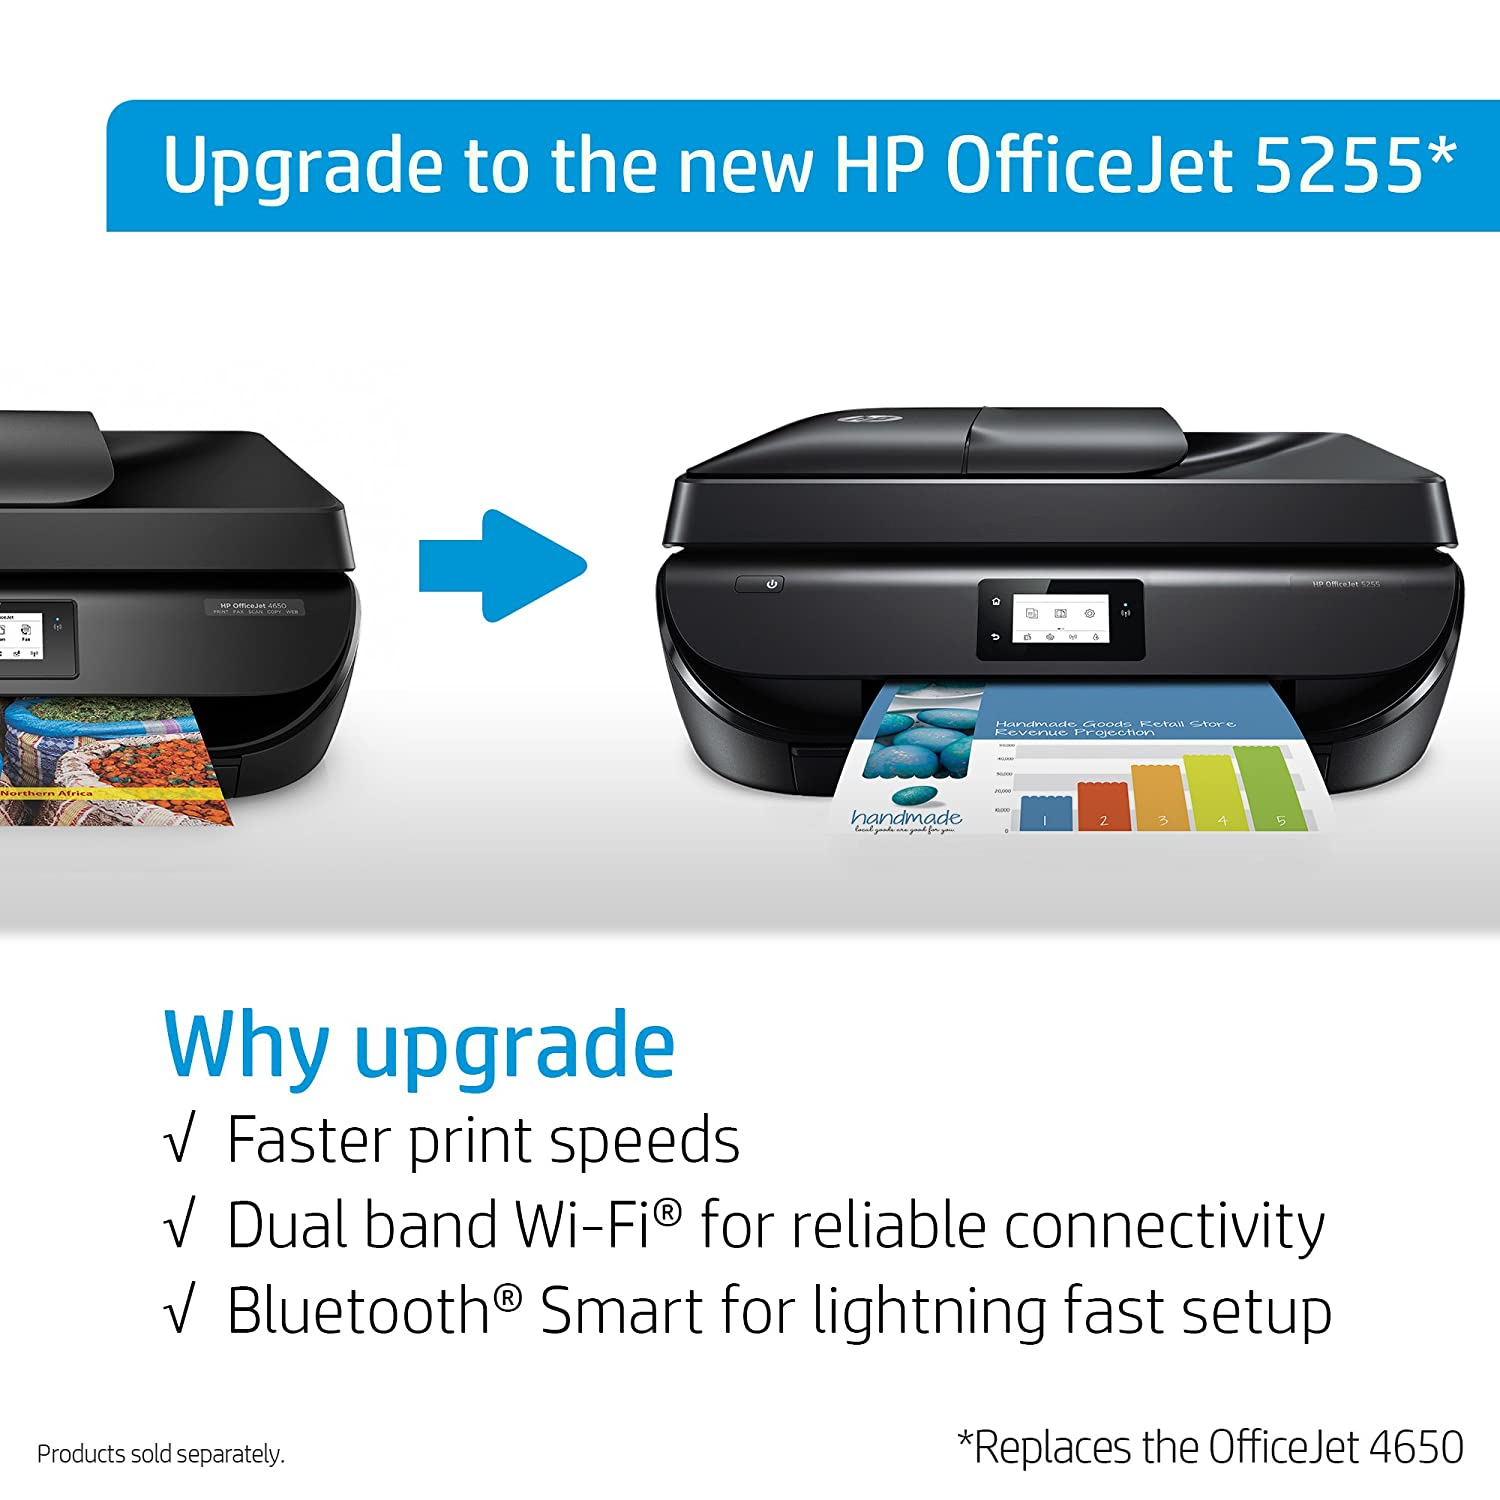 amazon com hp officejet 4650 wireless all in one photo printer with rh amazon com hp officejet 4650 service manual hp officejet 4650 owners manual